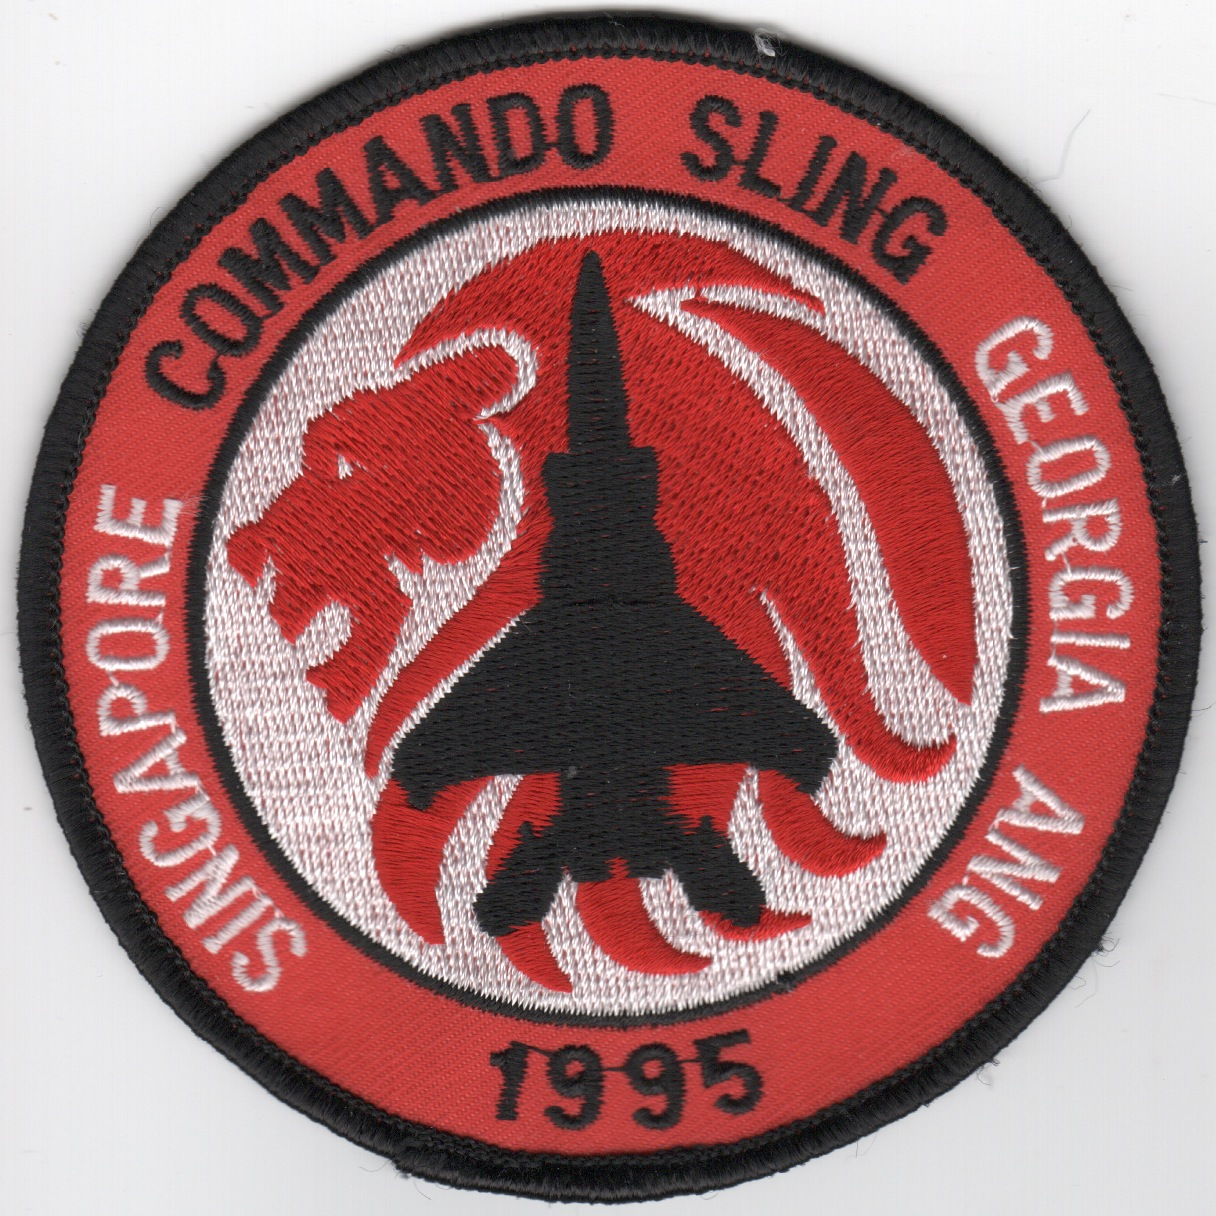 116TFW 1995 'Commando Sling' Patch (Original)